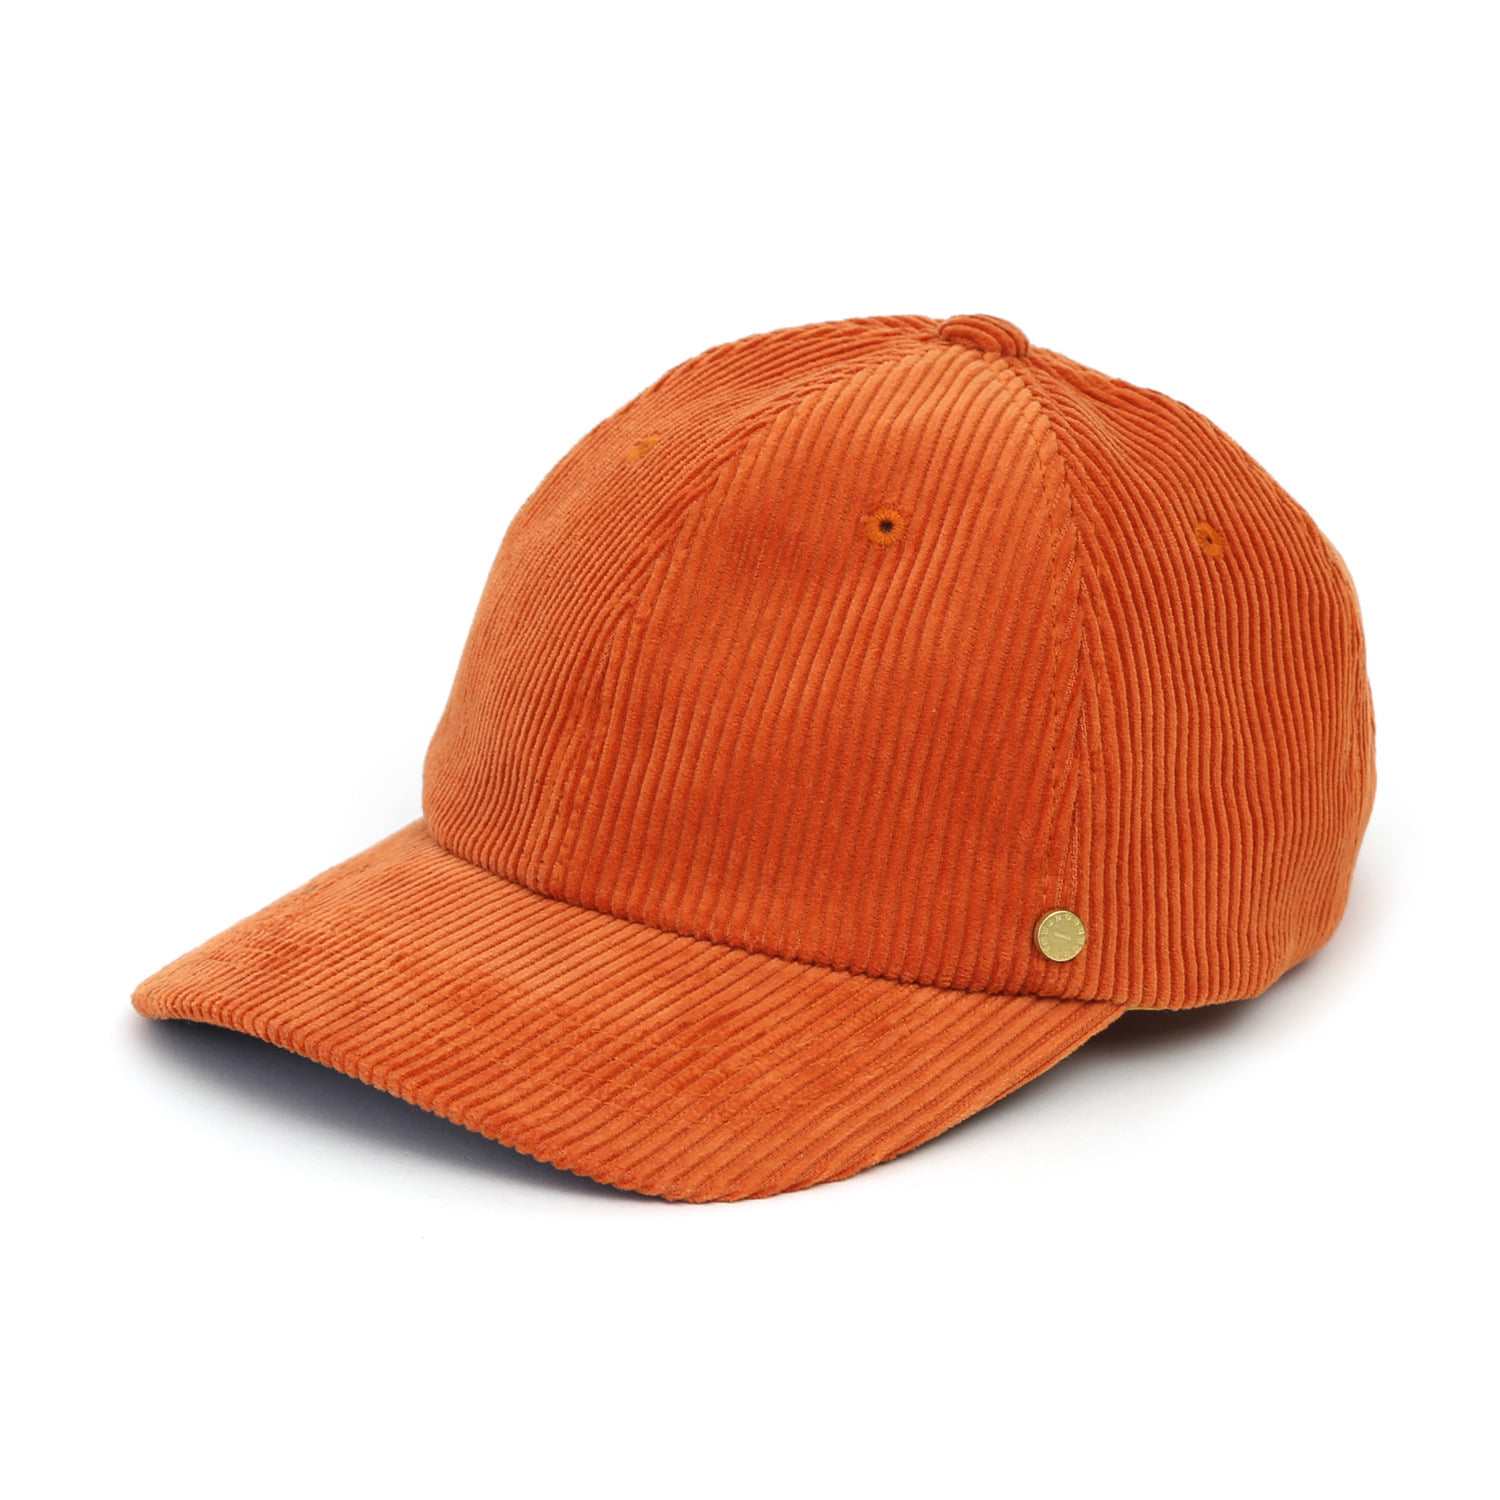 6PANNEL BALL CAP / CORDUROY / SUNSET